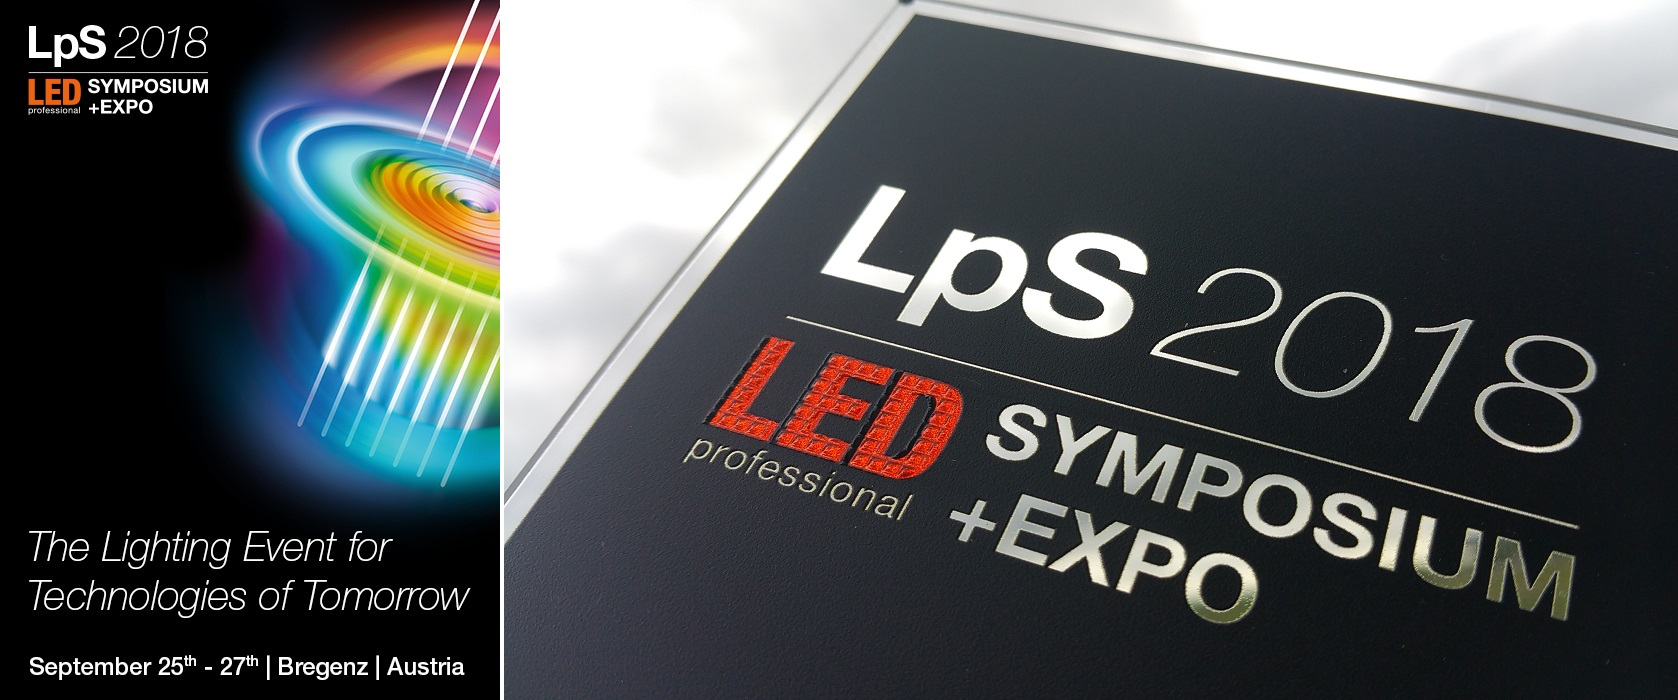 Header image for Luximprint announcement of presence at LPS2018 in Bregenz.